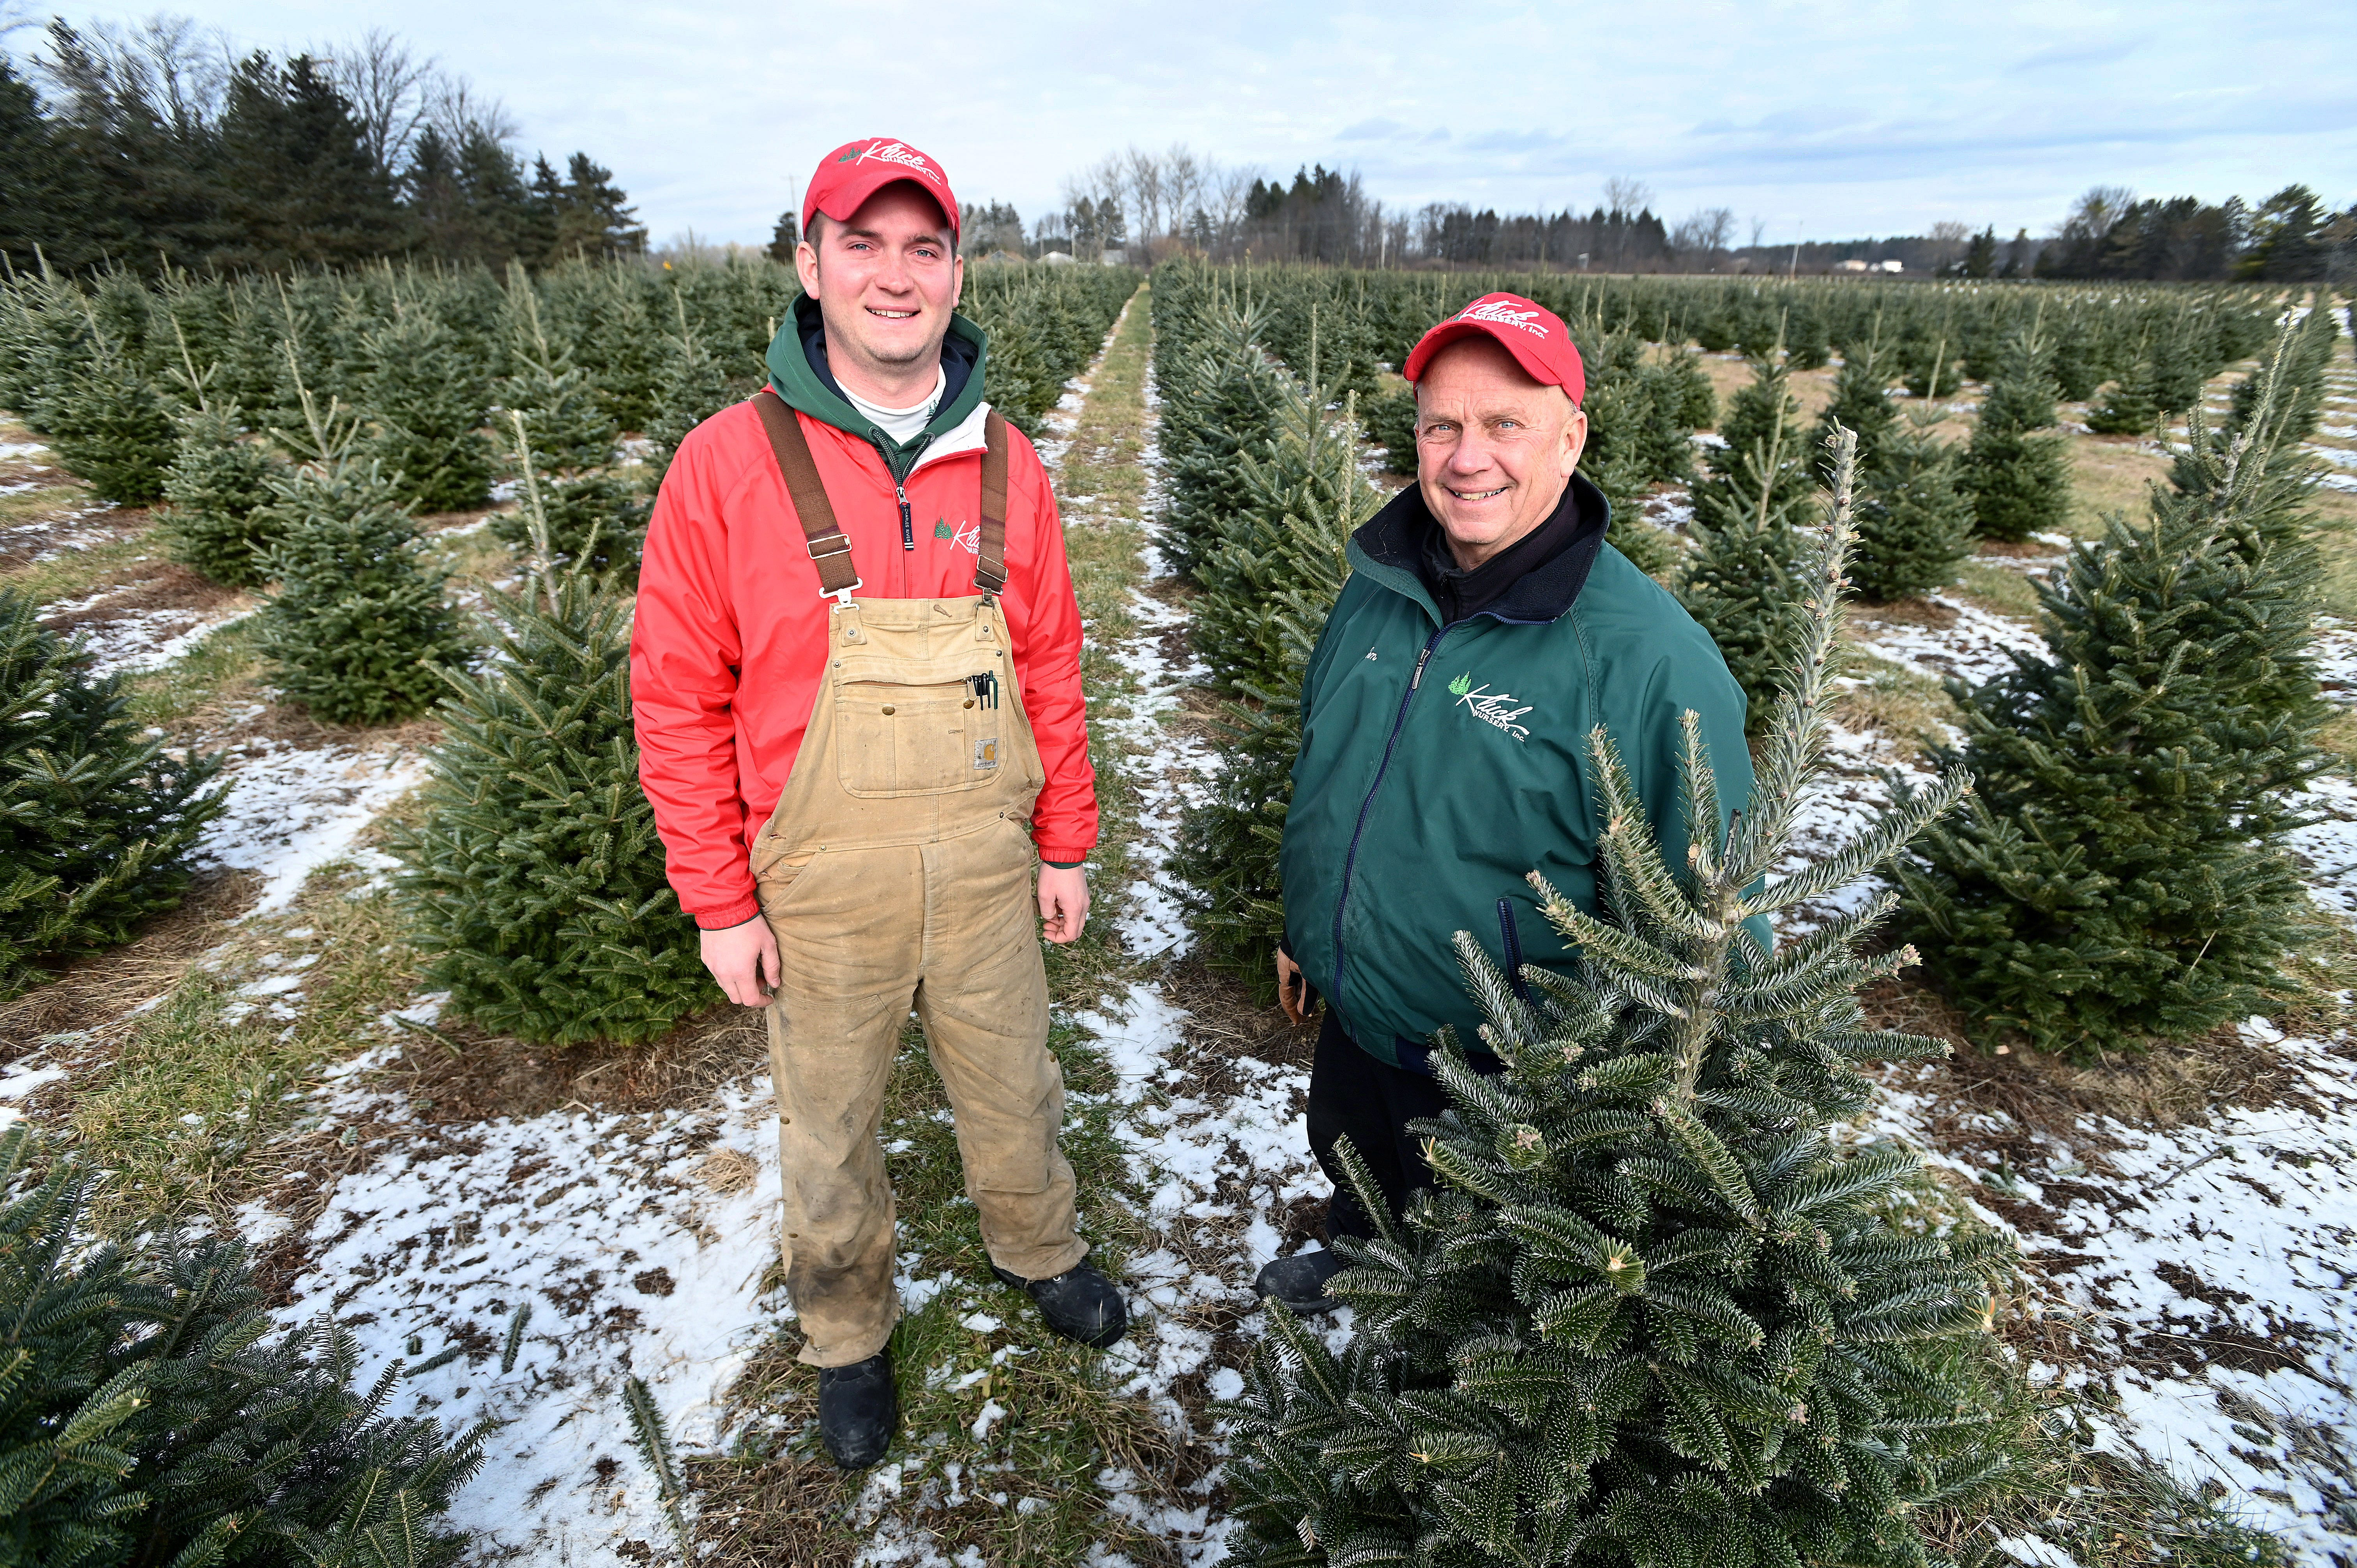 Father and son team Tom and Tyler Kluck have to look ahead, and make sure there are enough trees being grown for future harvests, at the Kluck family Christmas tree farm and nursery near Saginaw on Dec 7, 2019.